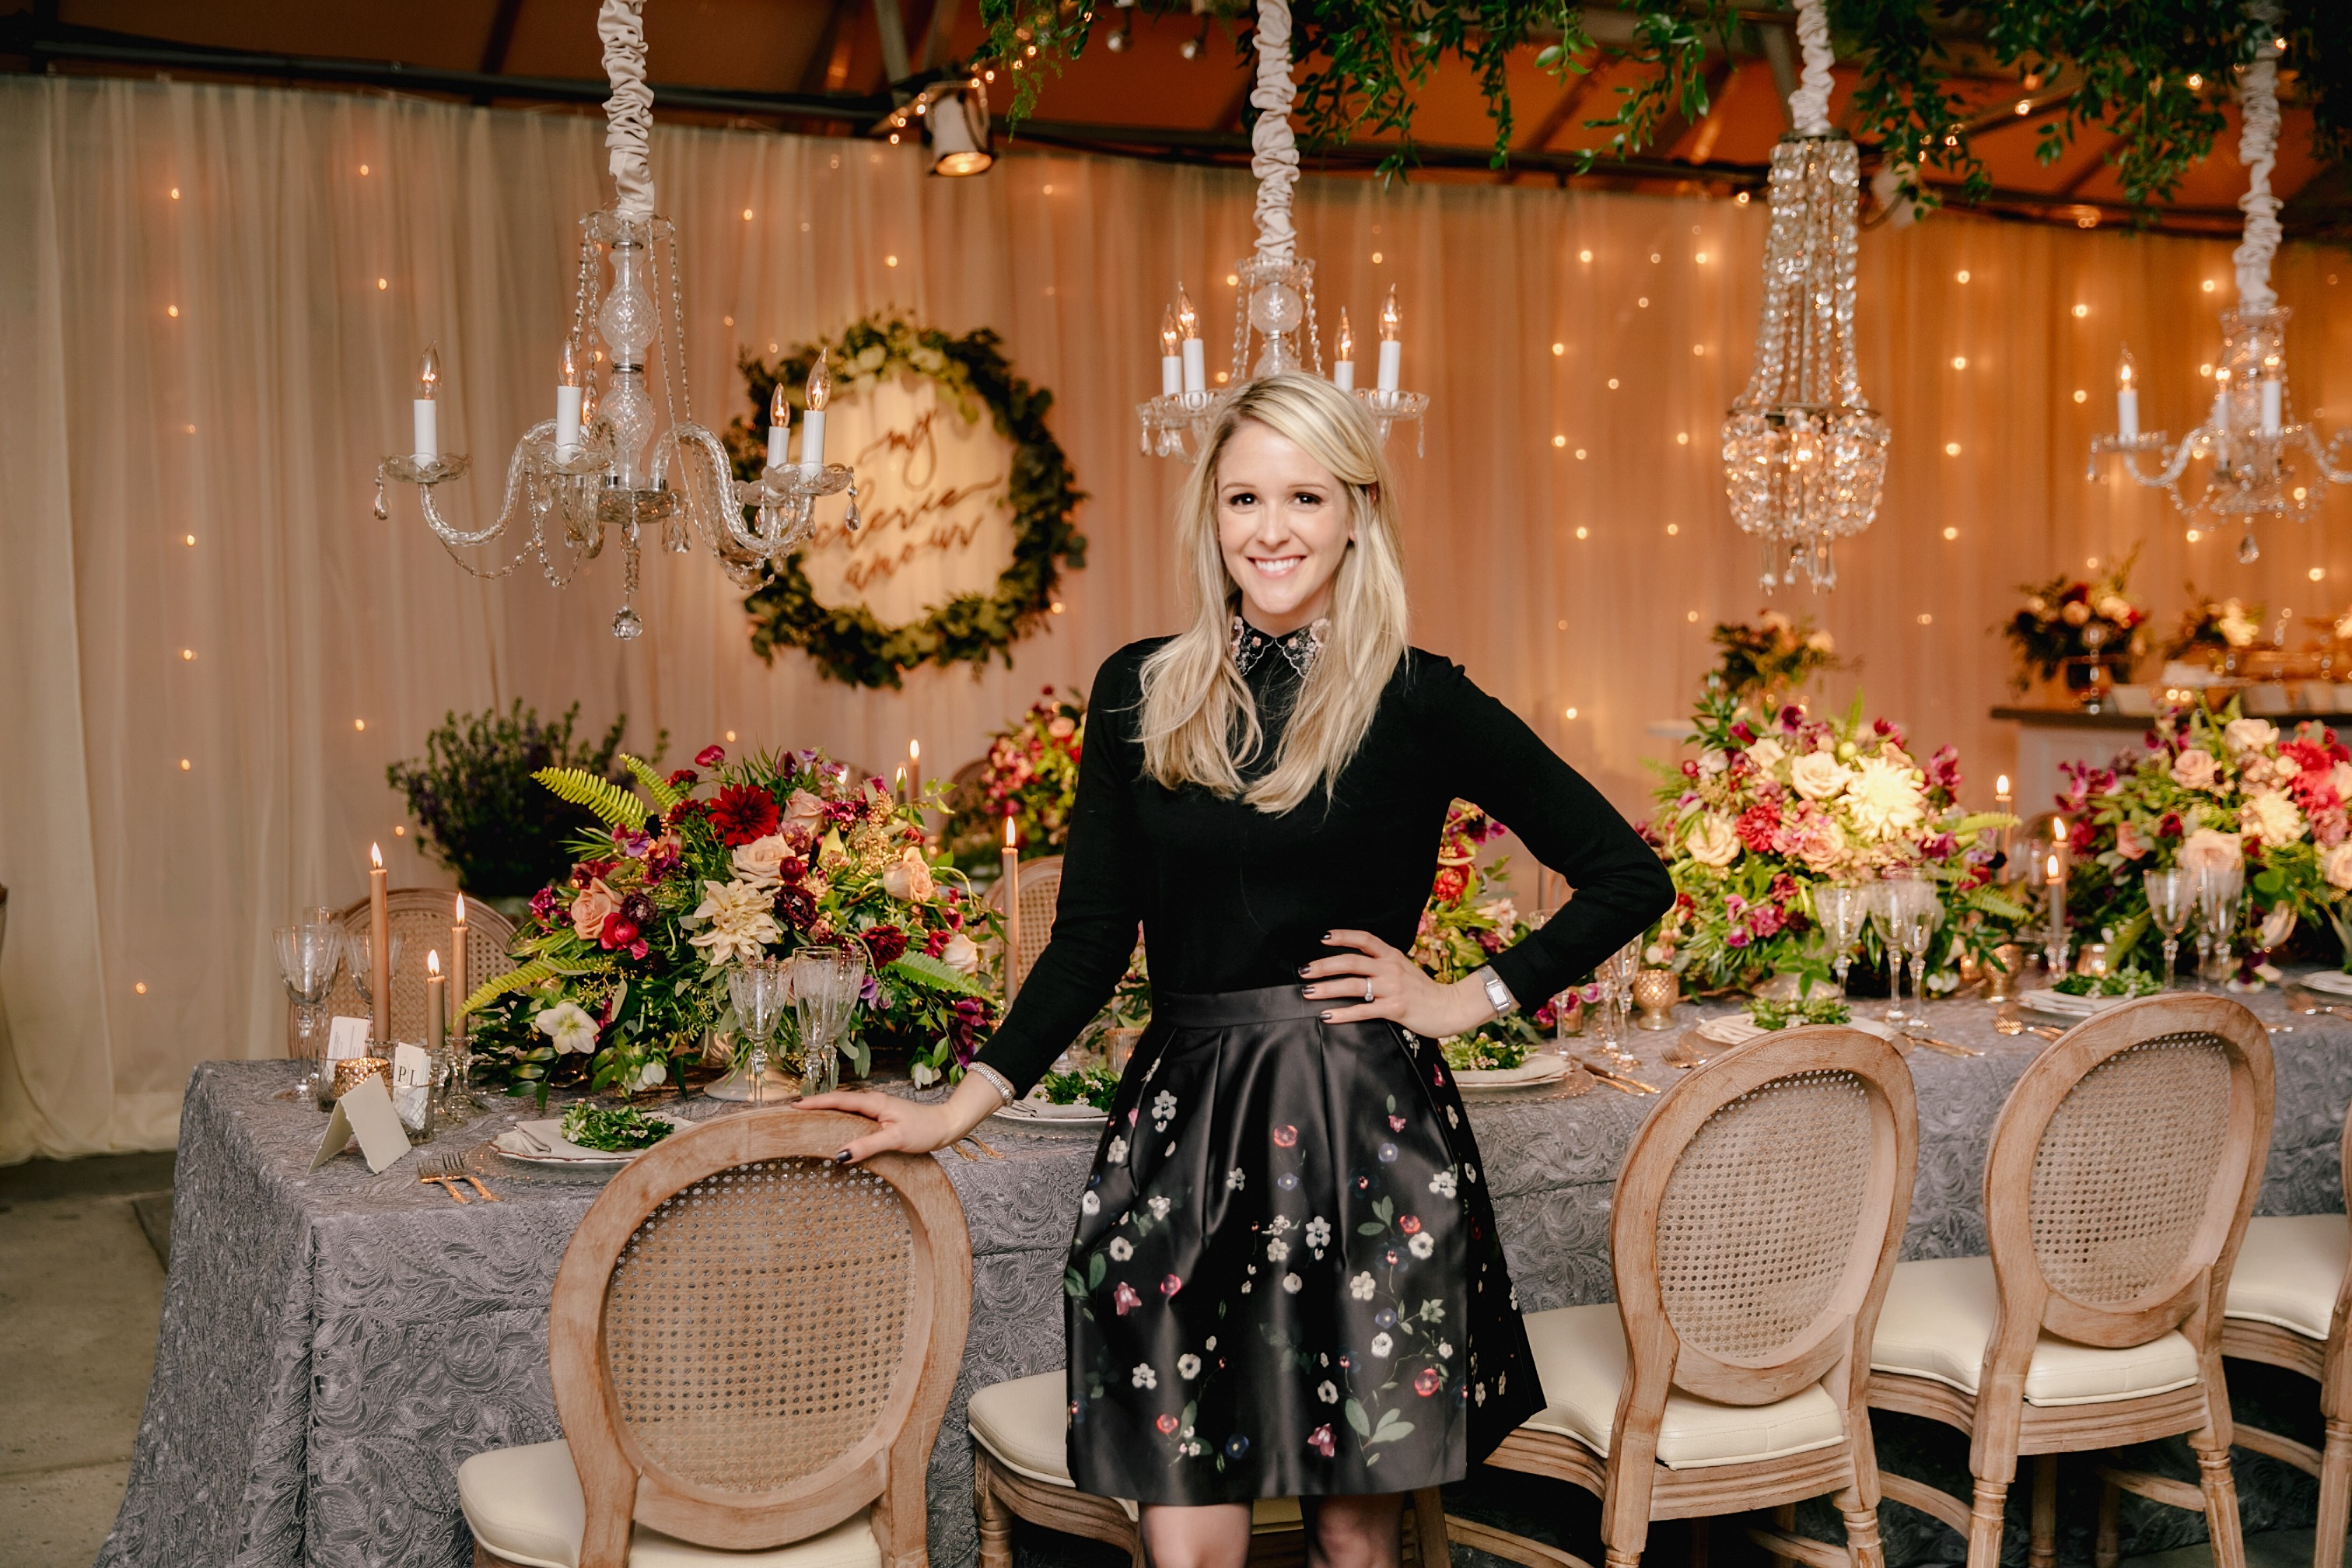 Philadelphia wedding planner Christiane Lehman, owner of Truly You Events